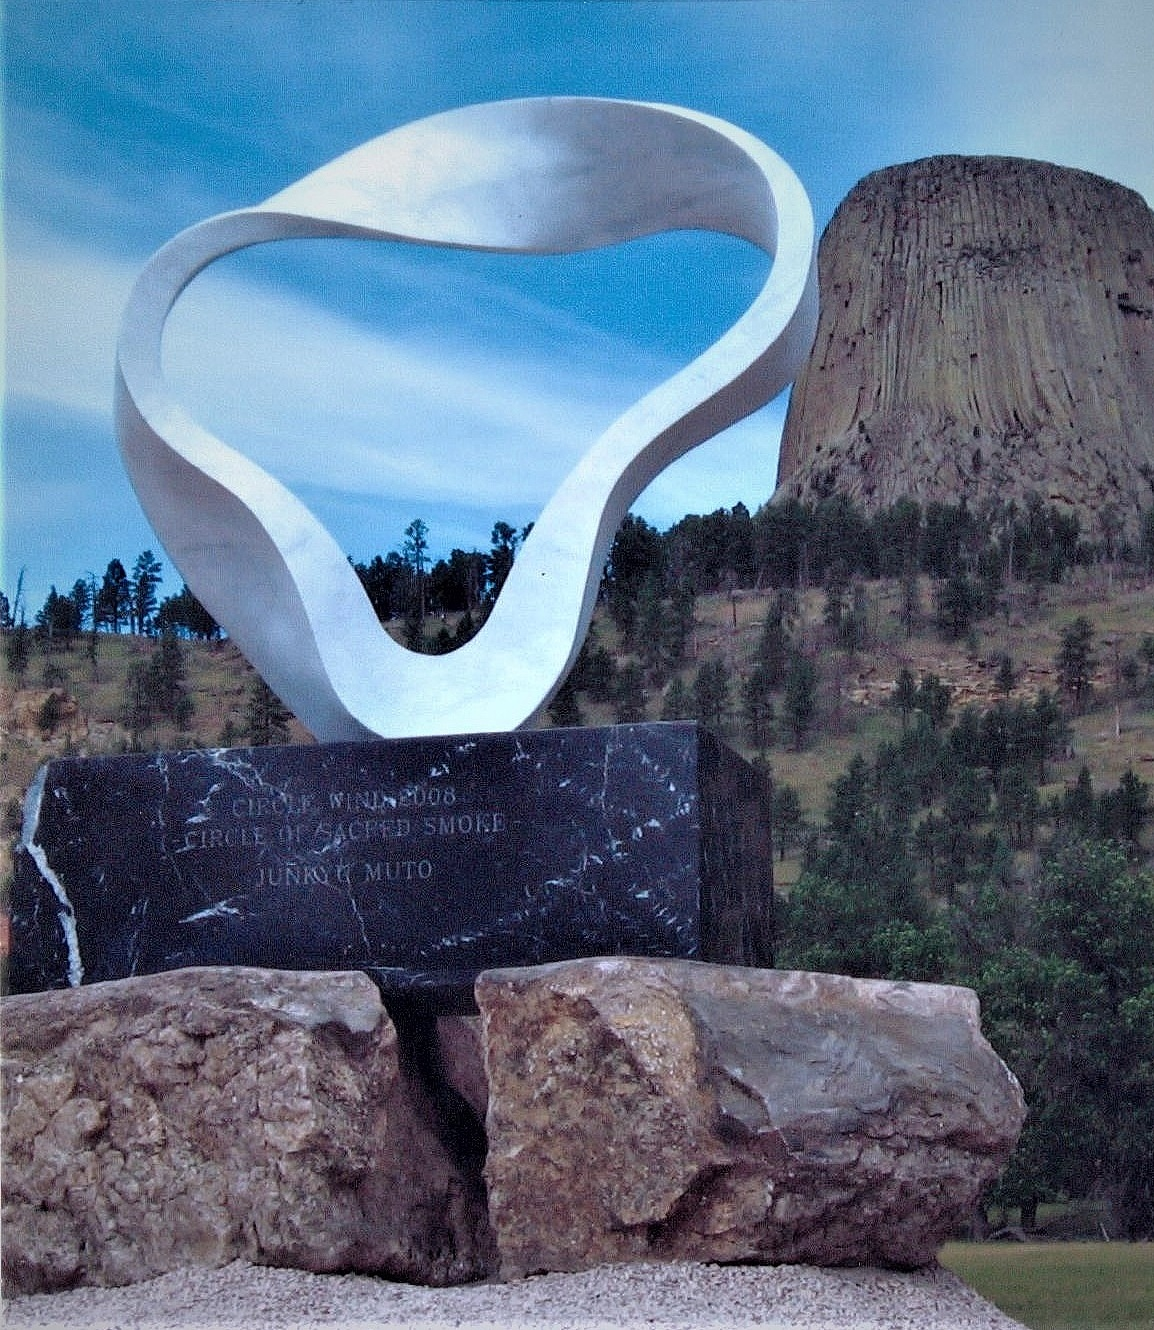 """The wind circle """"circle of smoke"""" sculpture by Junko Muto Wilen set and carved """"Crazy Horse stones"""" to support sculpture at Devils tower, Wyoming"""